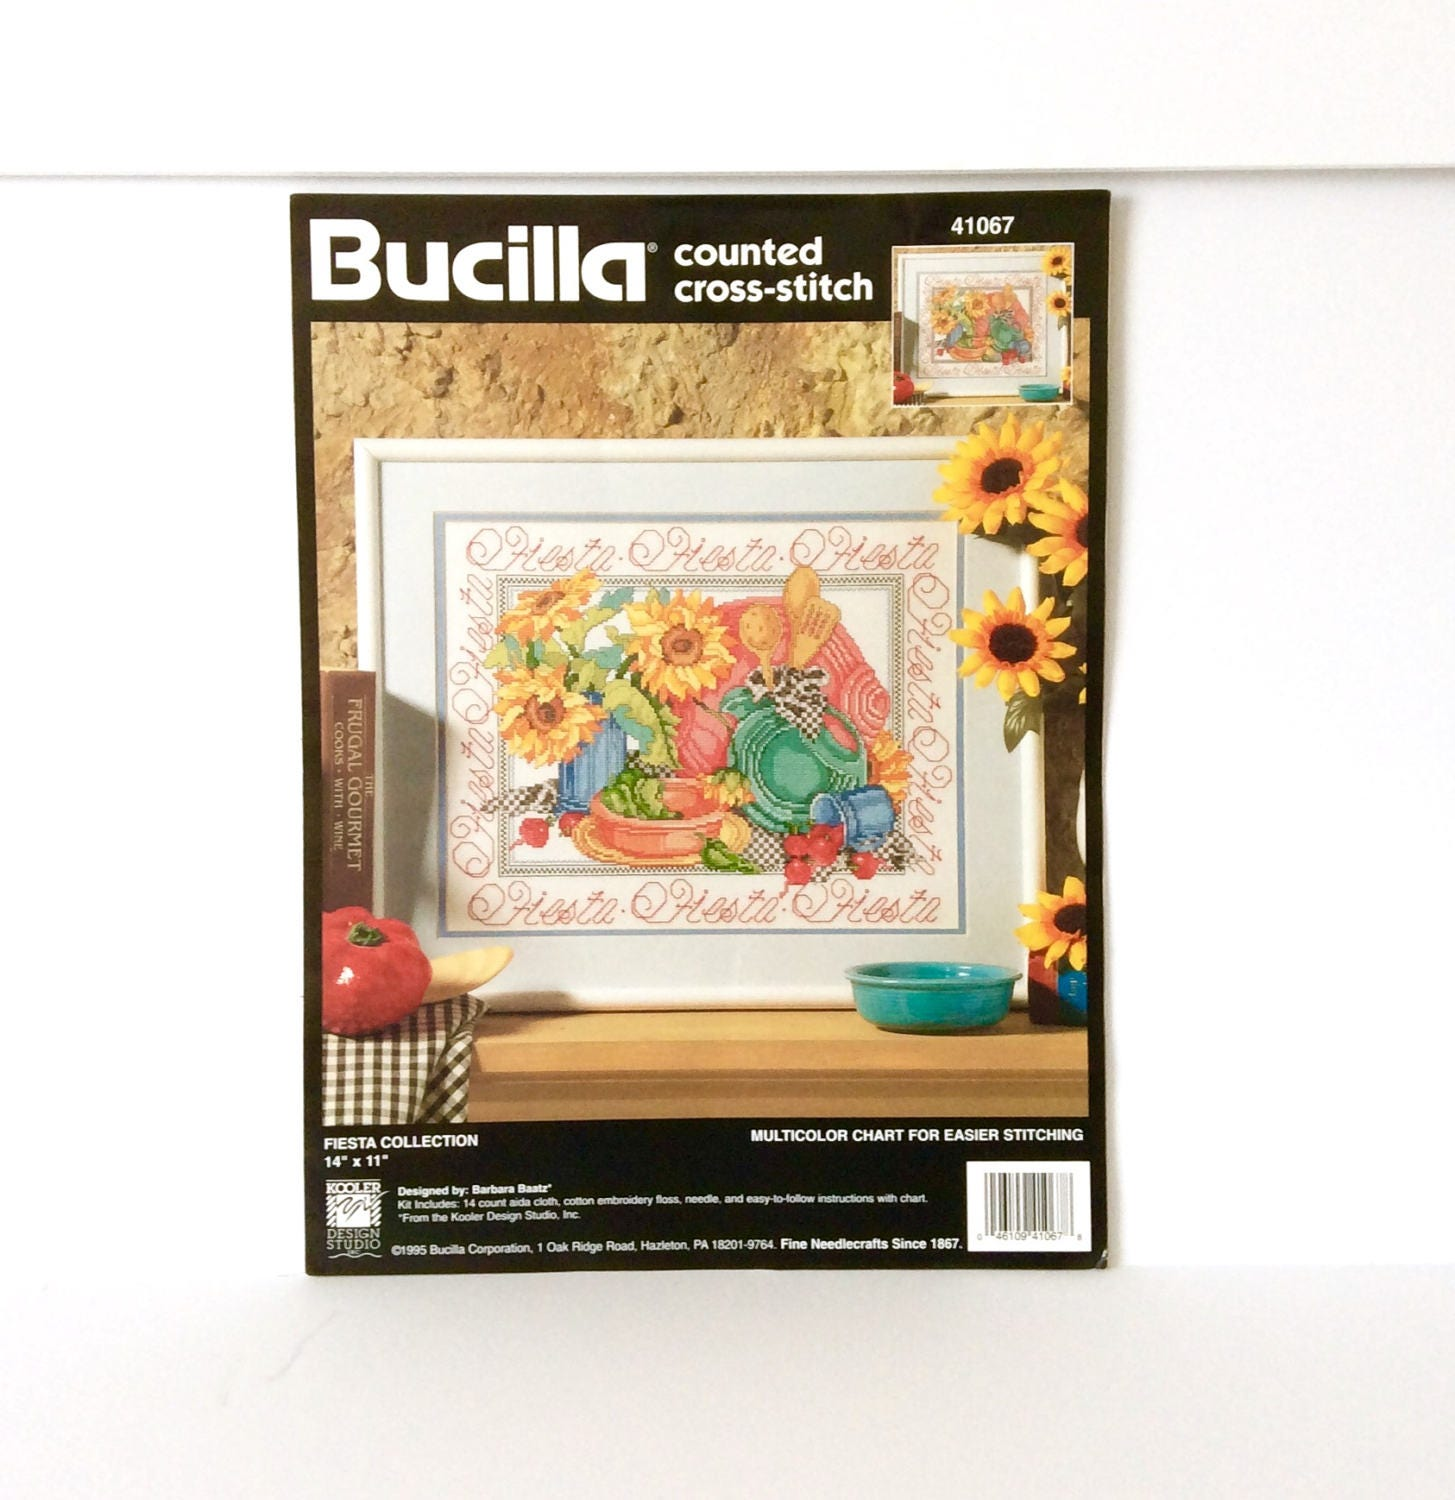 Bucilla chart fiesta collection cross stitch chart only vintage sold by textilesandthings nvjuhfo Choice Image